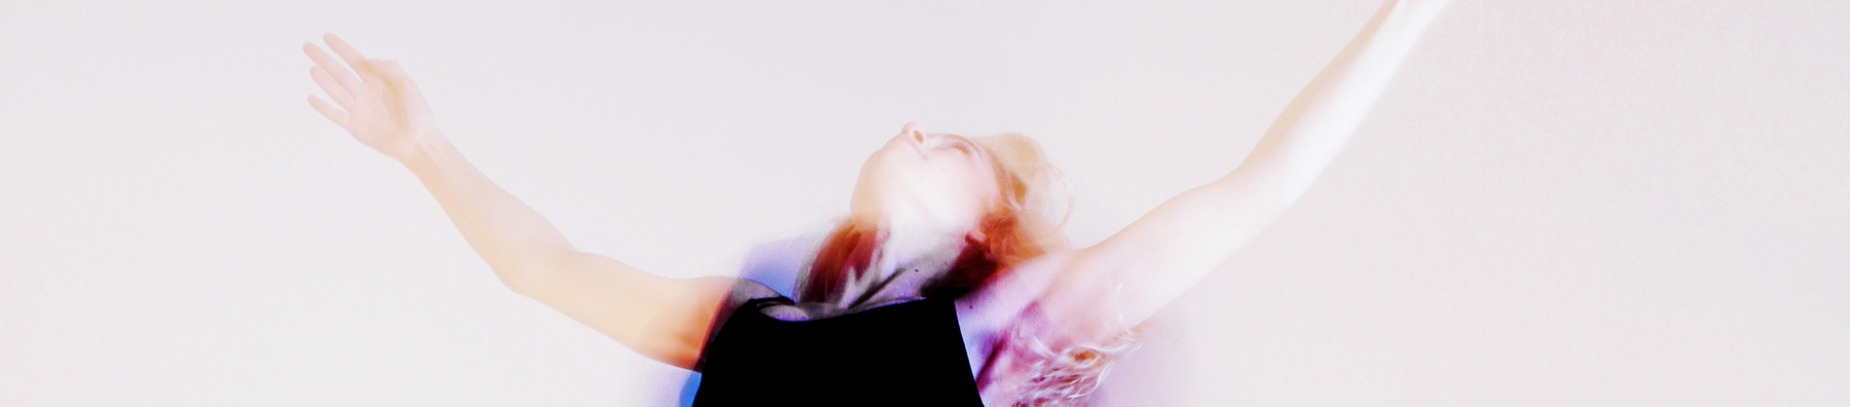 A distorted photo of a women jumping with her hands in the air